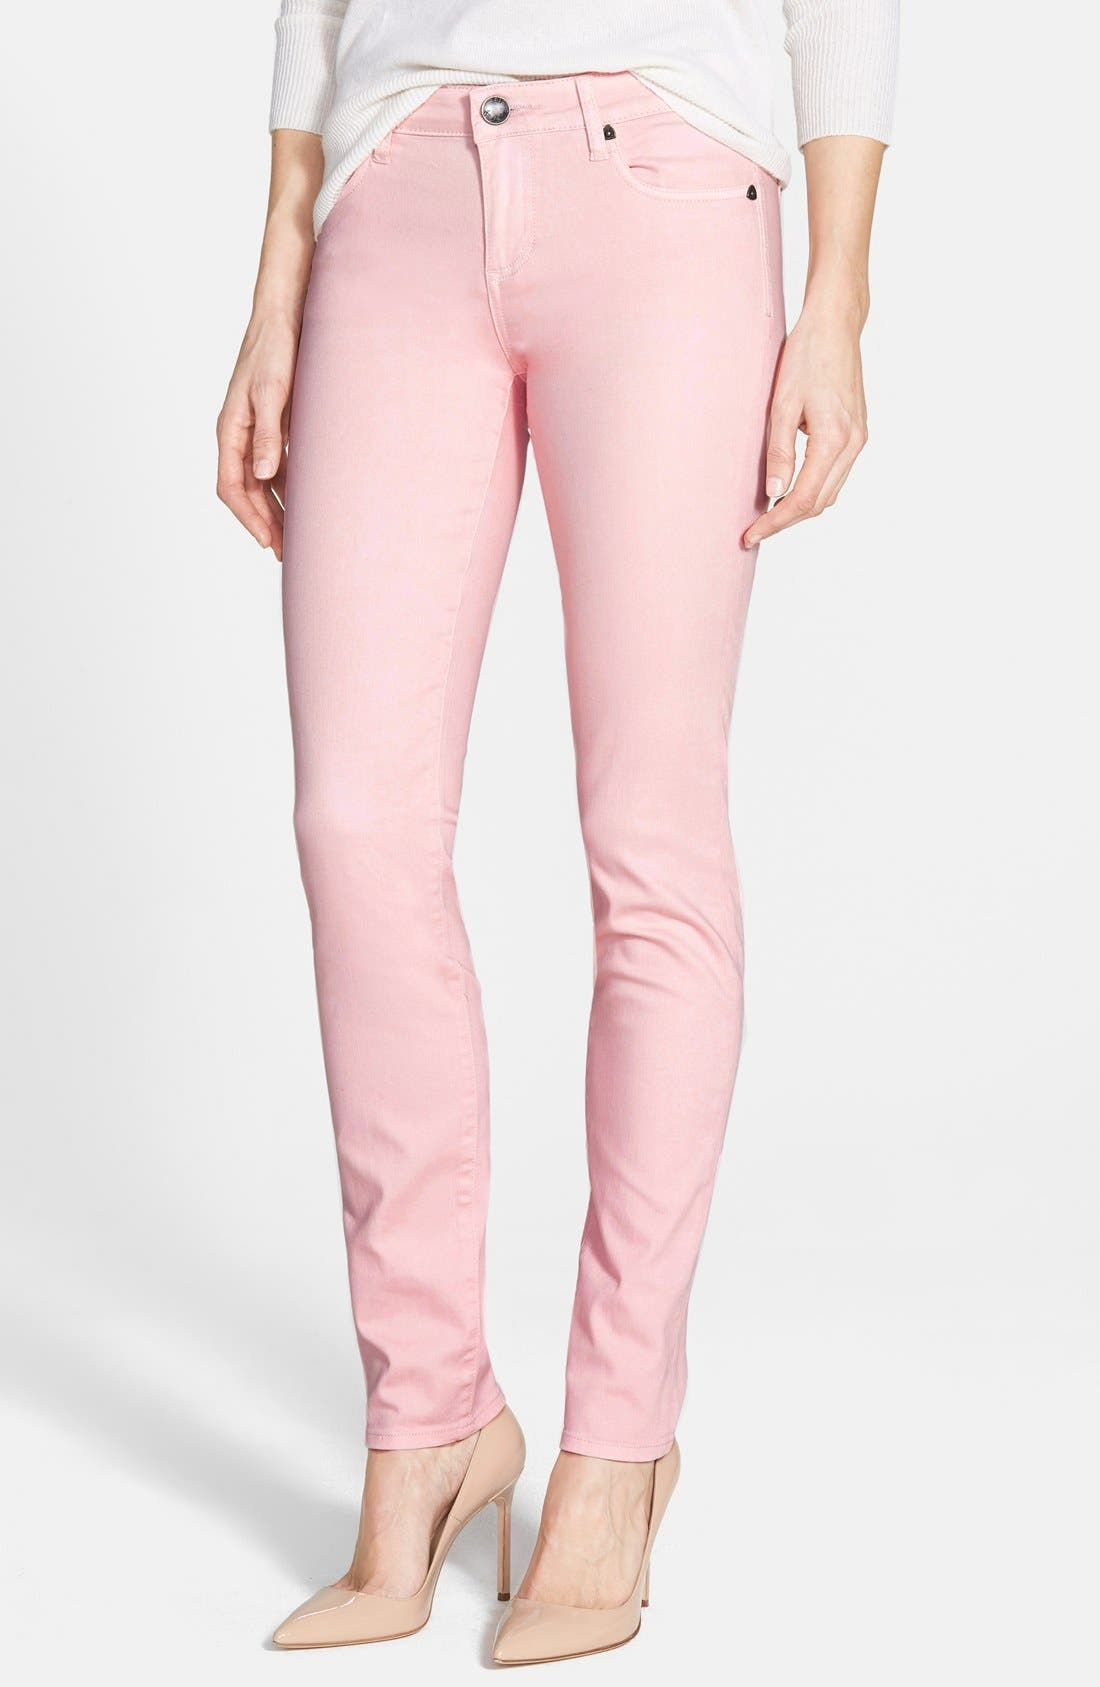 Alternate Image 1 Selected - KUT from the Kloth 'Diana' Colored Stretch Skinny Jeans